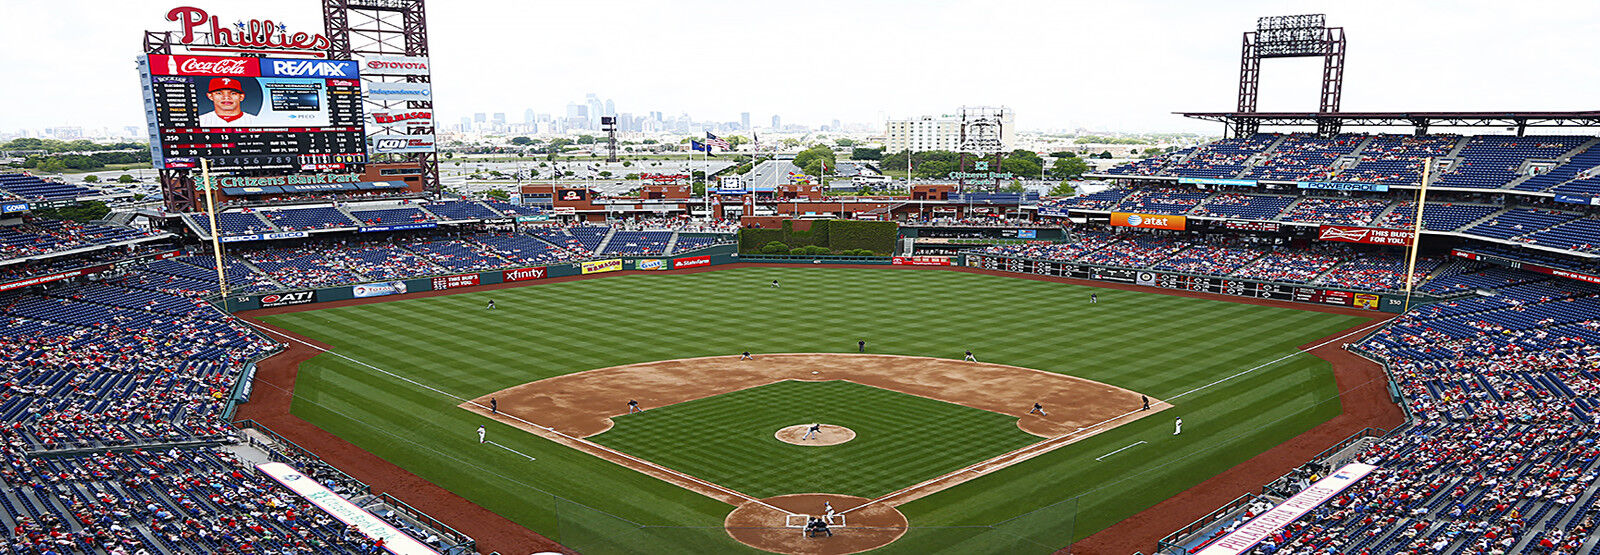 Milwaukee Brewers at Philadelphia Phillies